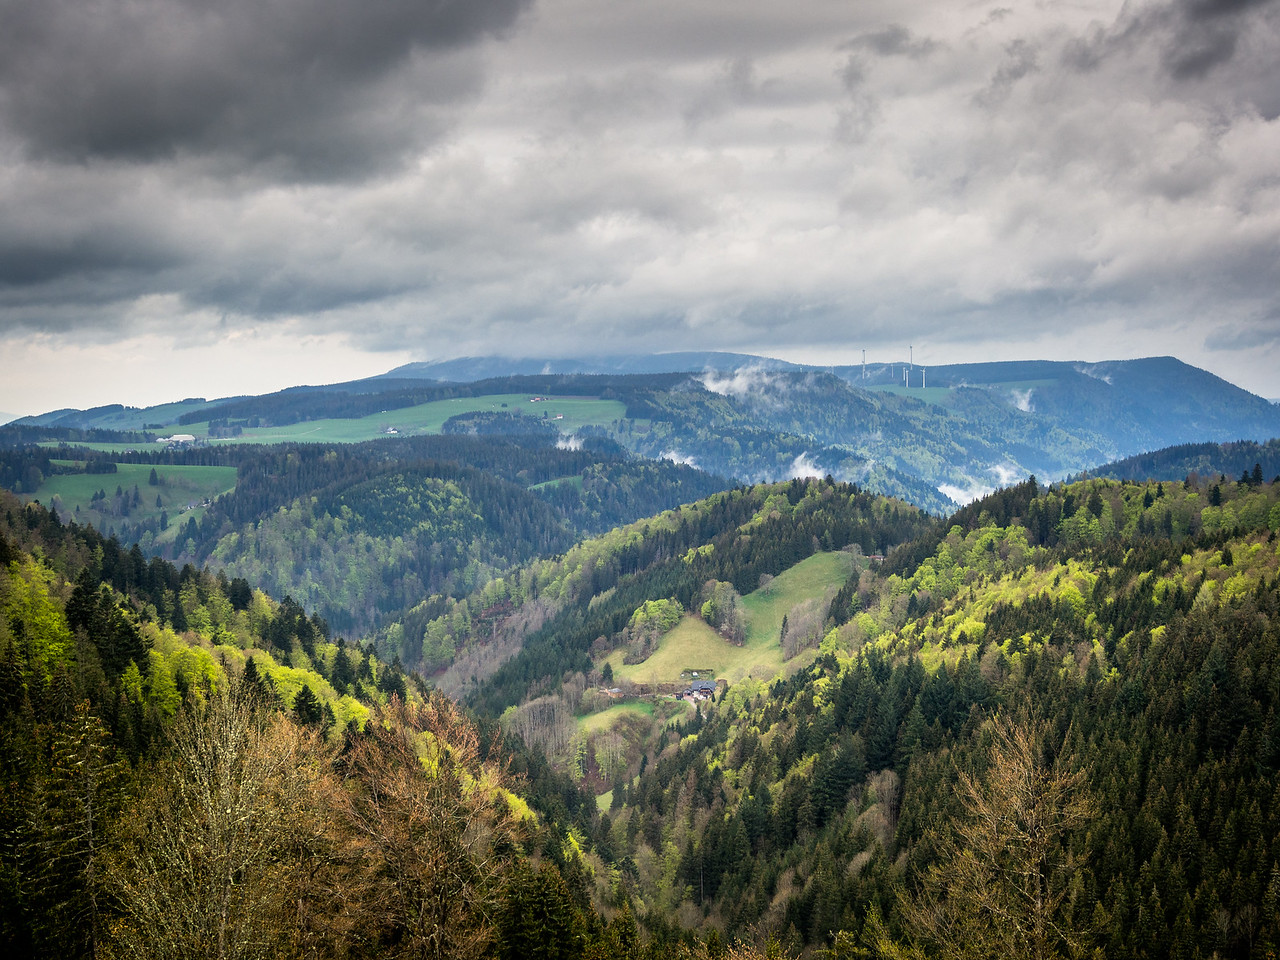 Storm Clouds over the Black Forest, Germany